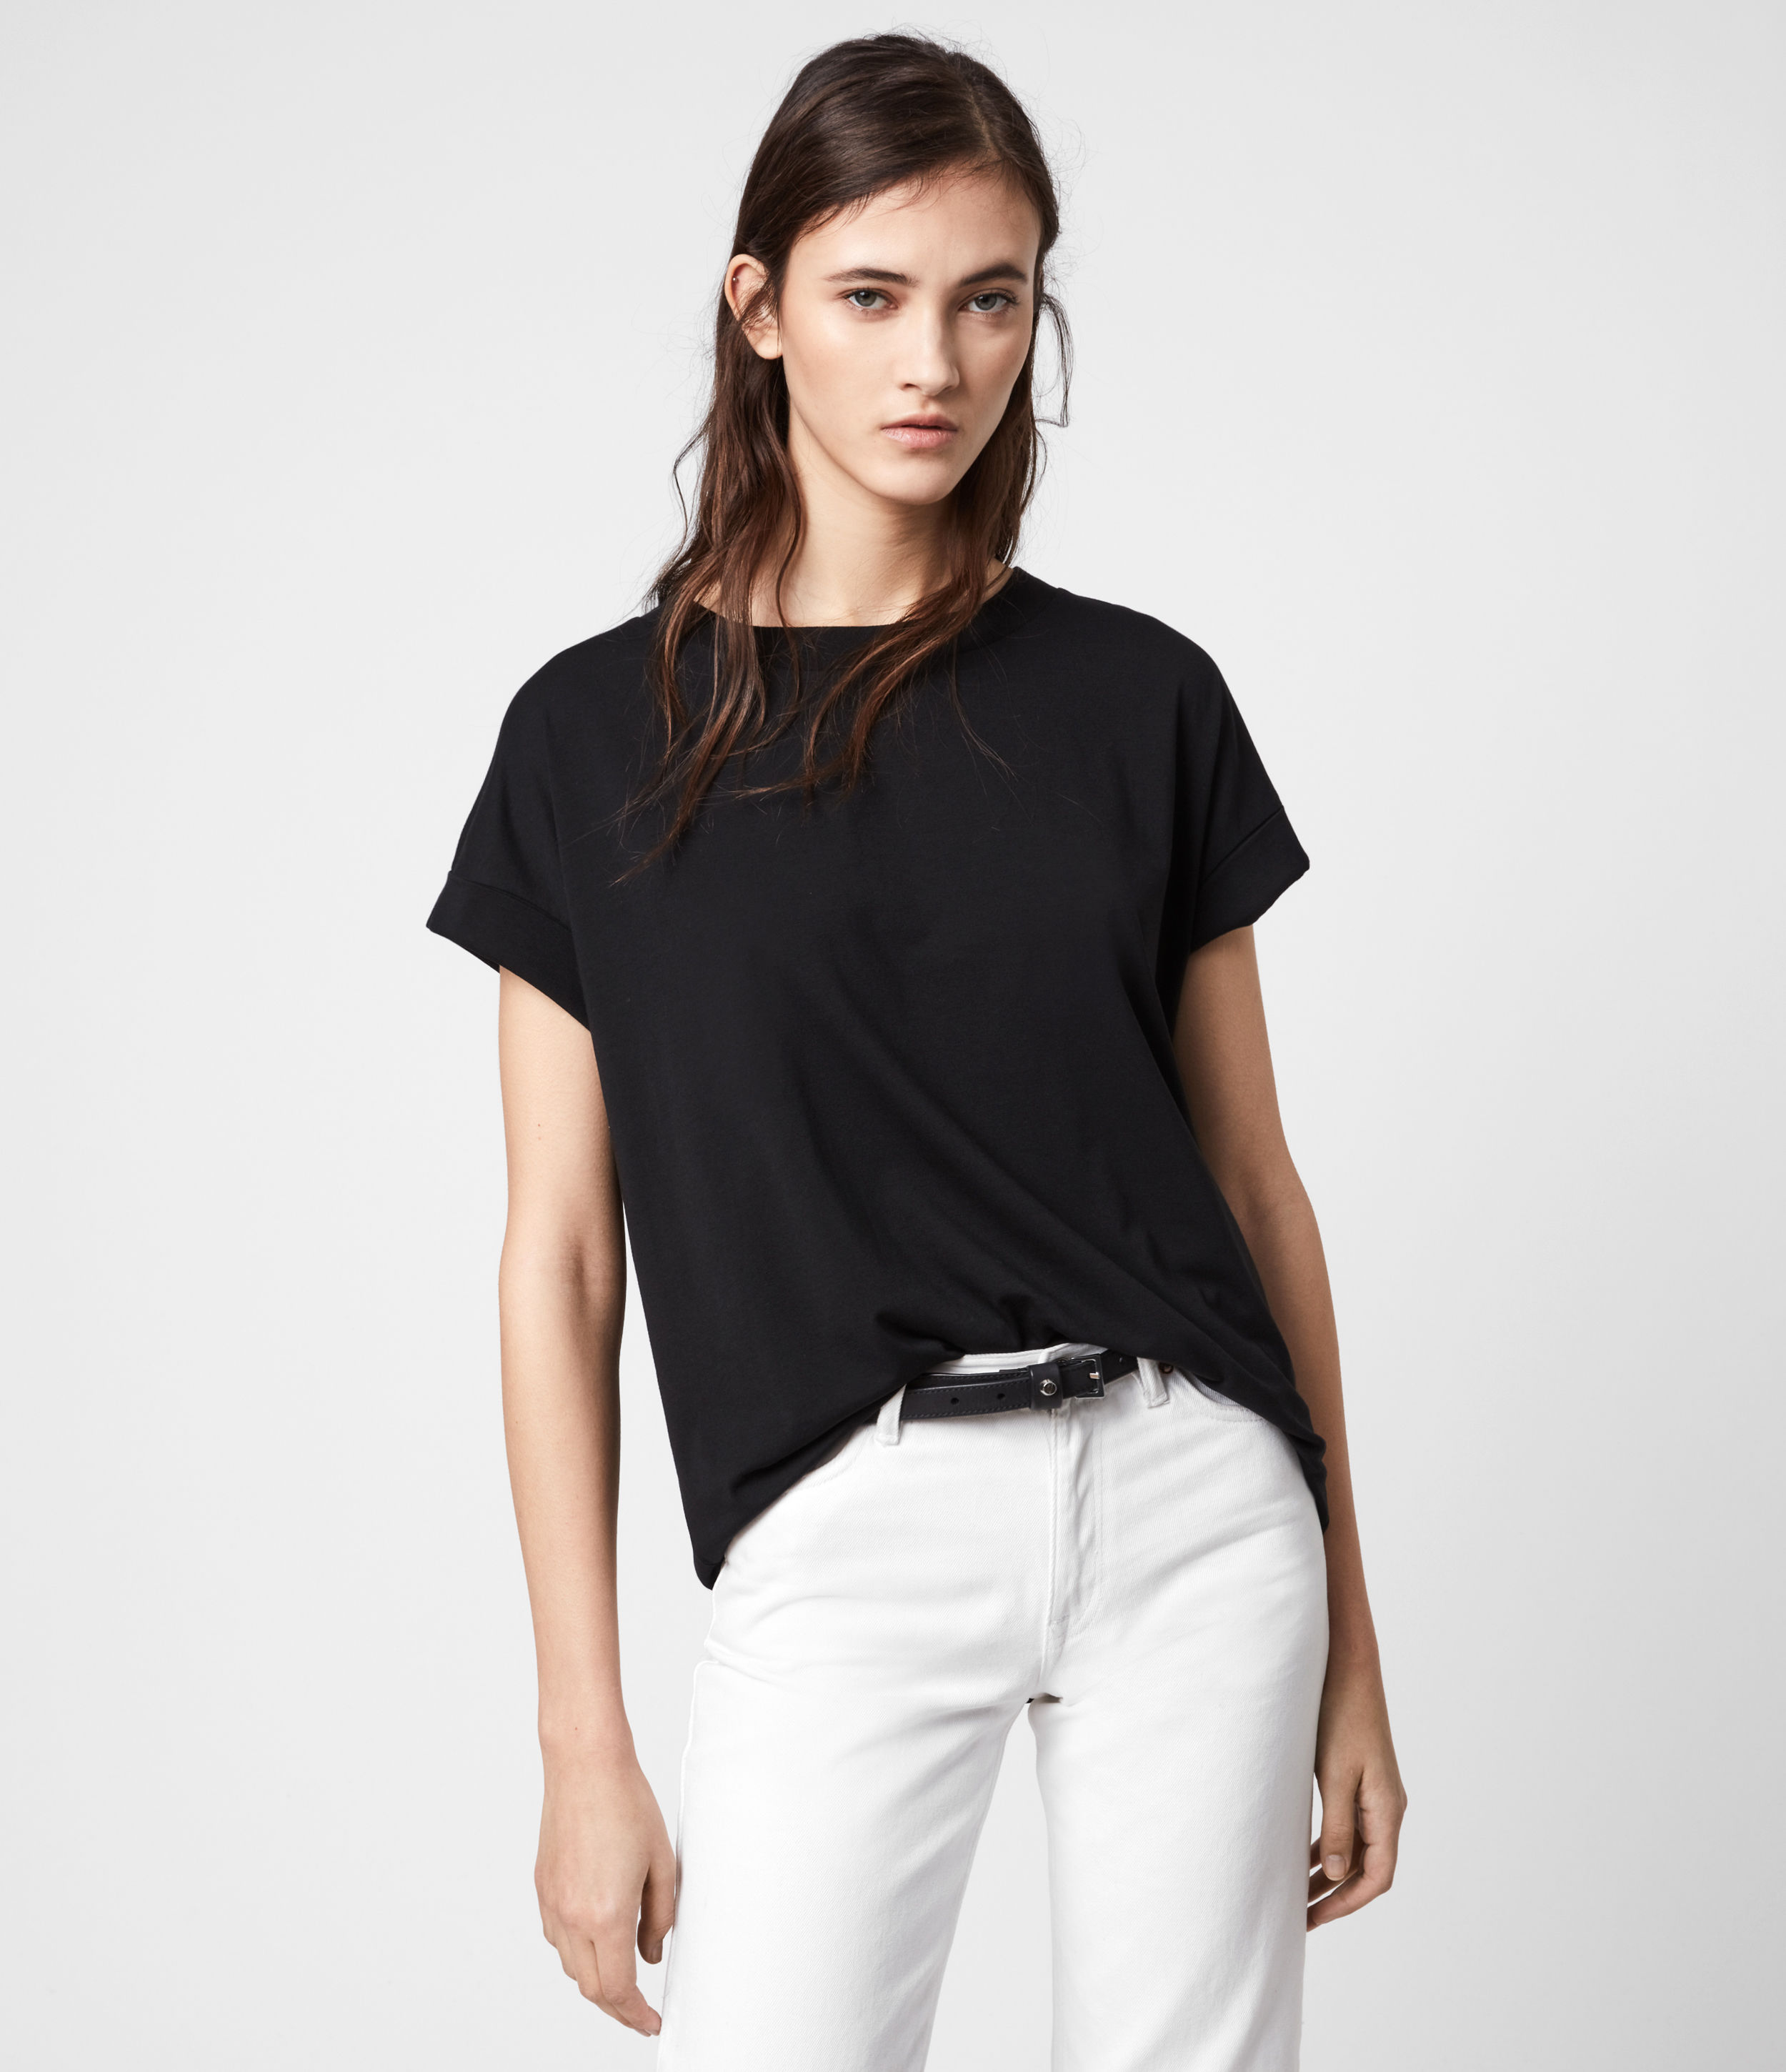 AllSaints Women's Cotton Imogen Boy T-Shirt, Black, Size: M/L